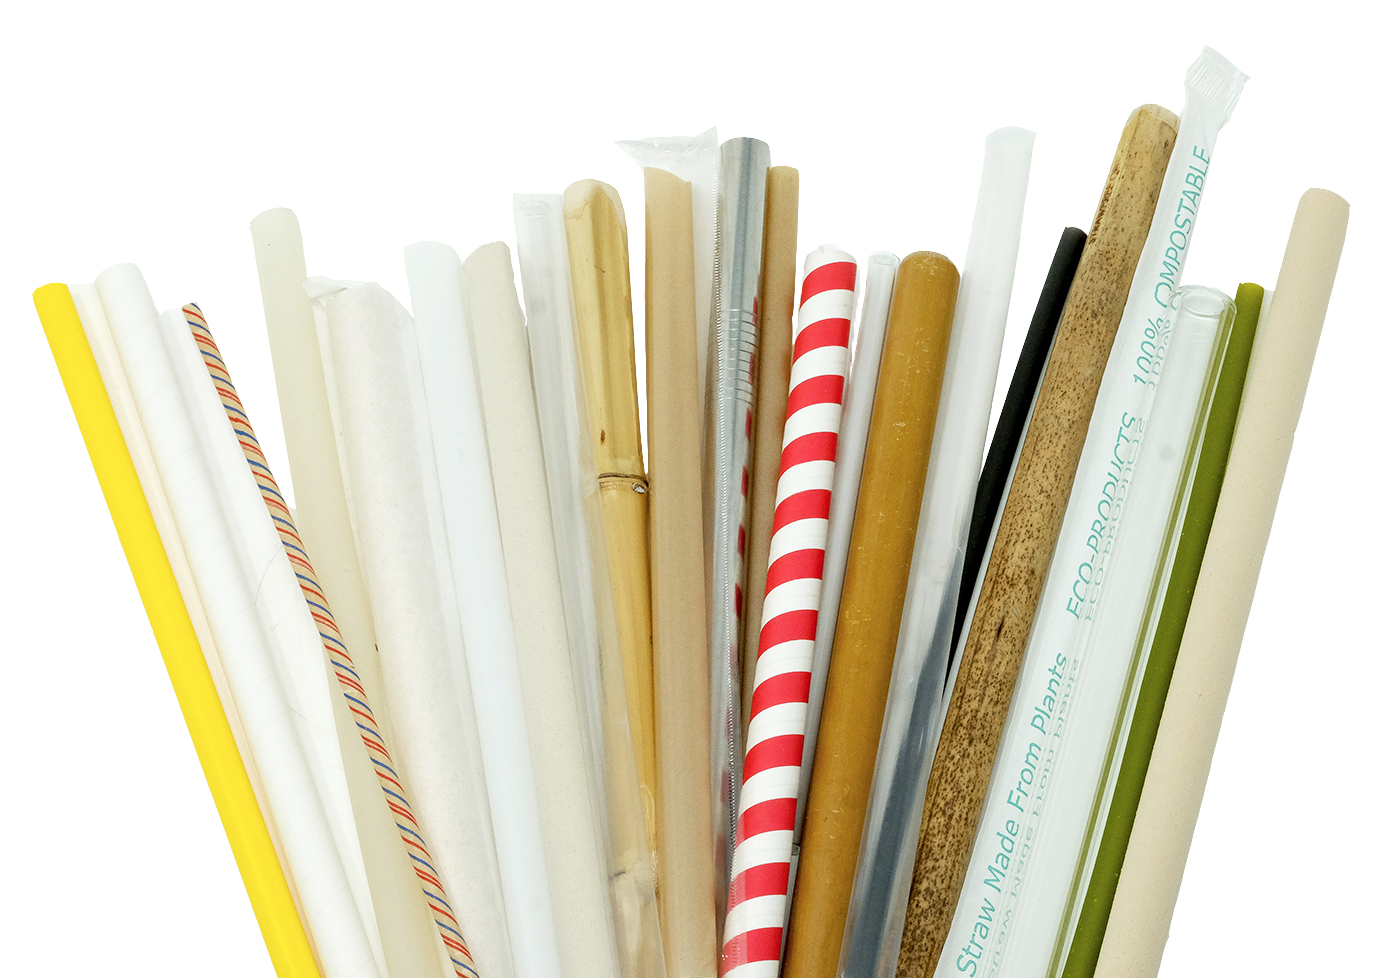 How We Decided - When choosing our new single-use straws, we had to suck - a lot. We tested over 30+ different options and looked for 3 main things:? Is it biodegradable?(compostable is no longer enough)? Is it effective?(can it hold up in hot/cold drinks over time)? Is it sustainable?(made from renewable resources)